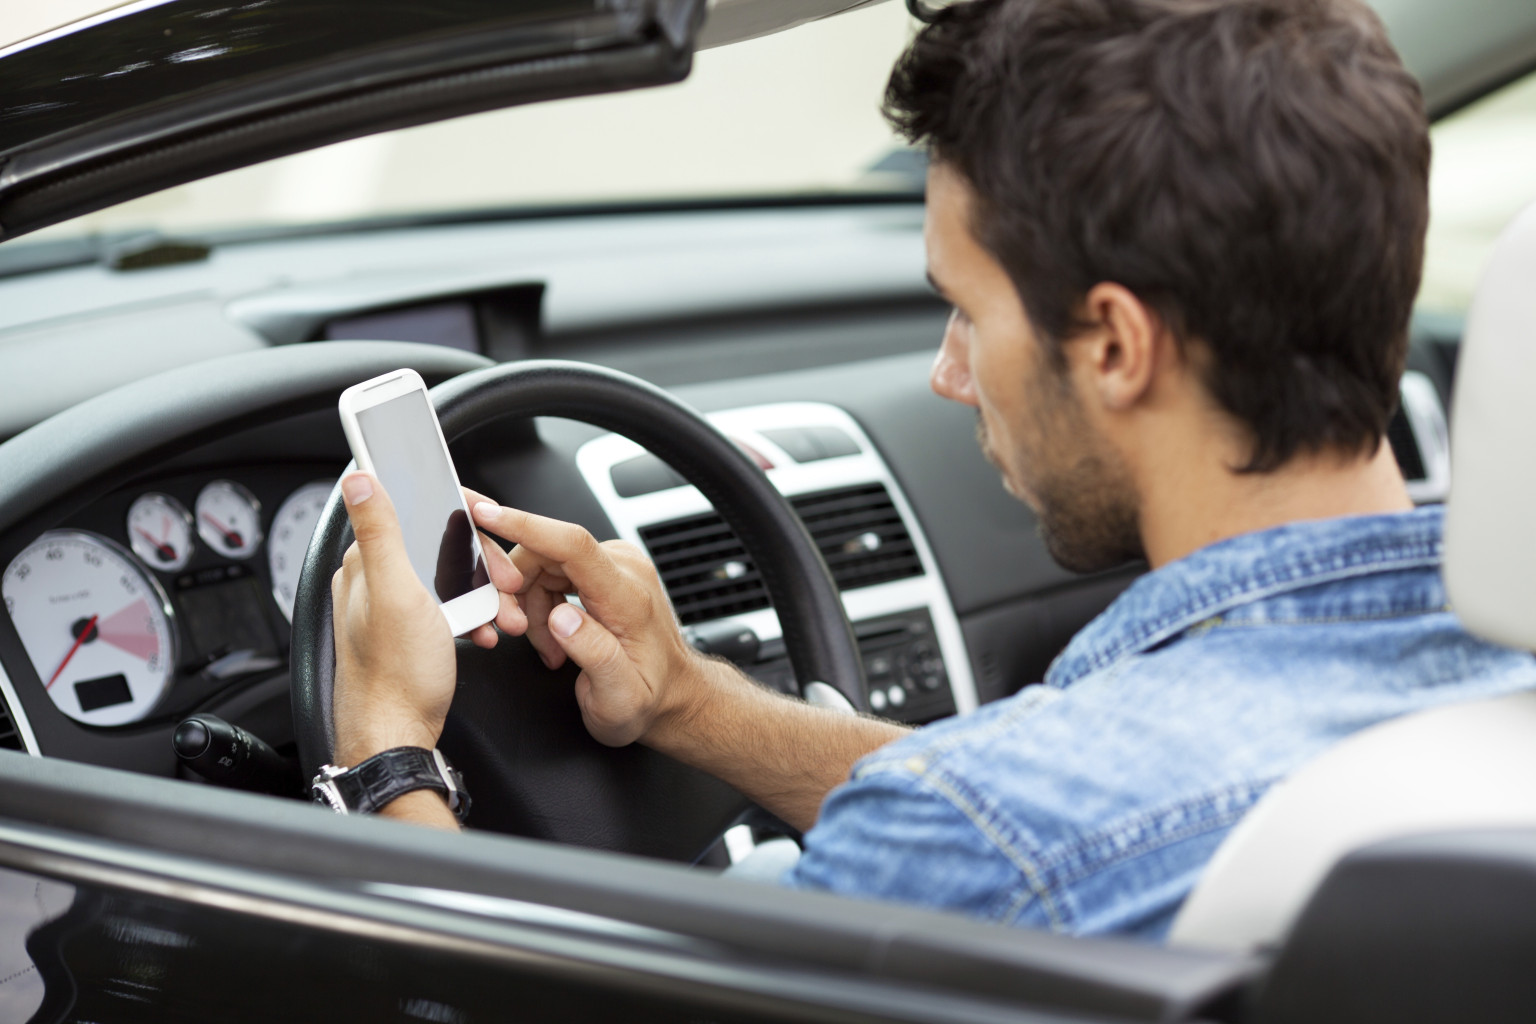 apple, iphone, lawsuit, texting and driving, distracted driving